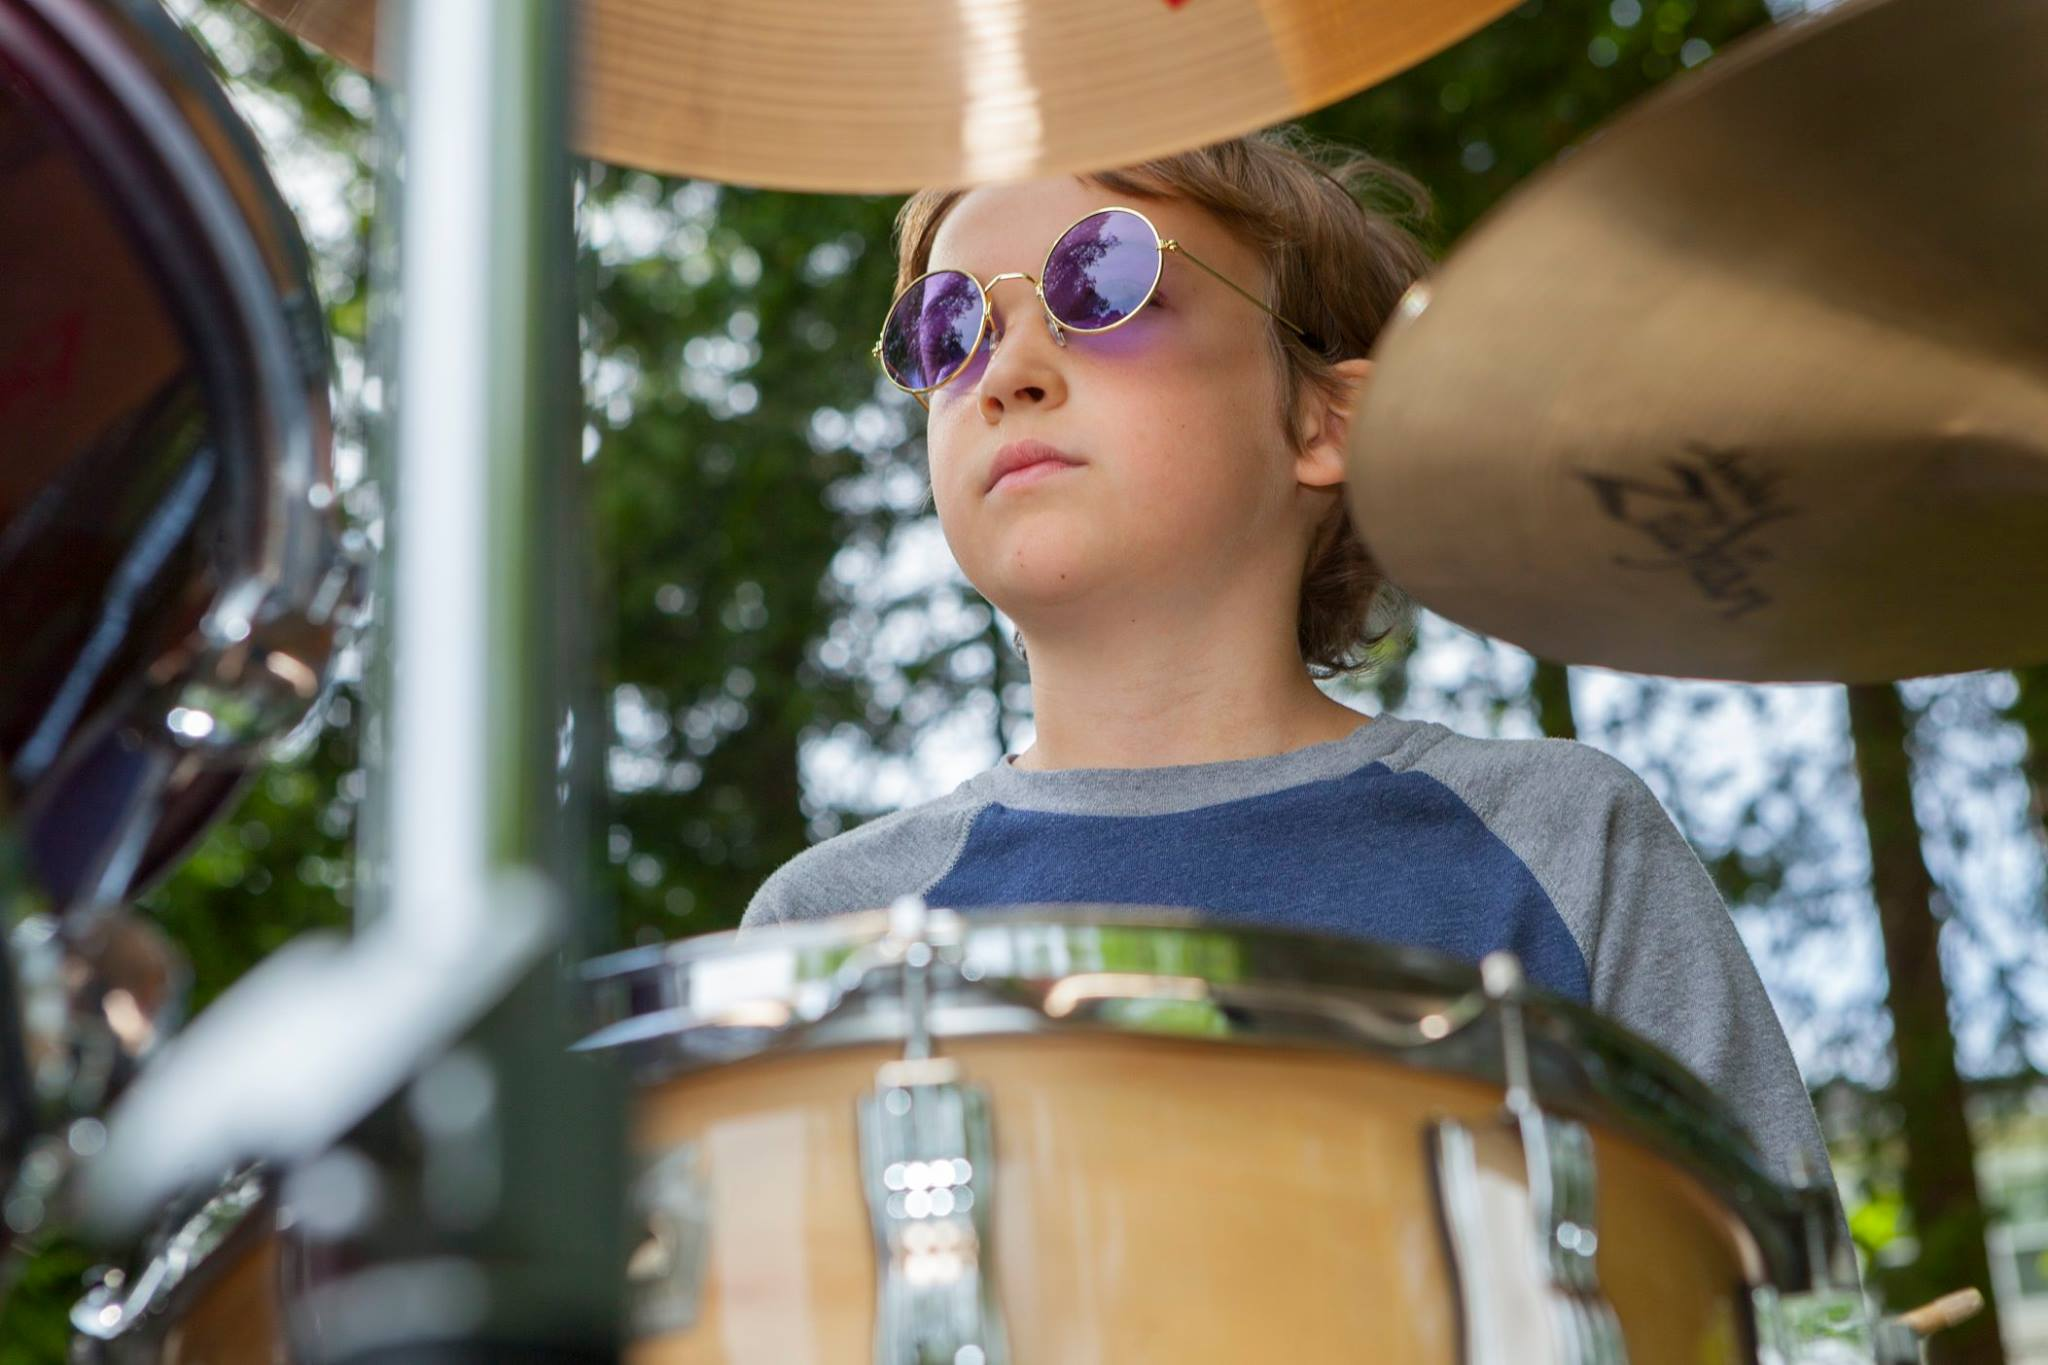 Midcoast Music Academy offers both private and group instruction for all ages on a wide variety of instruments.